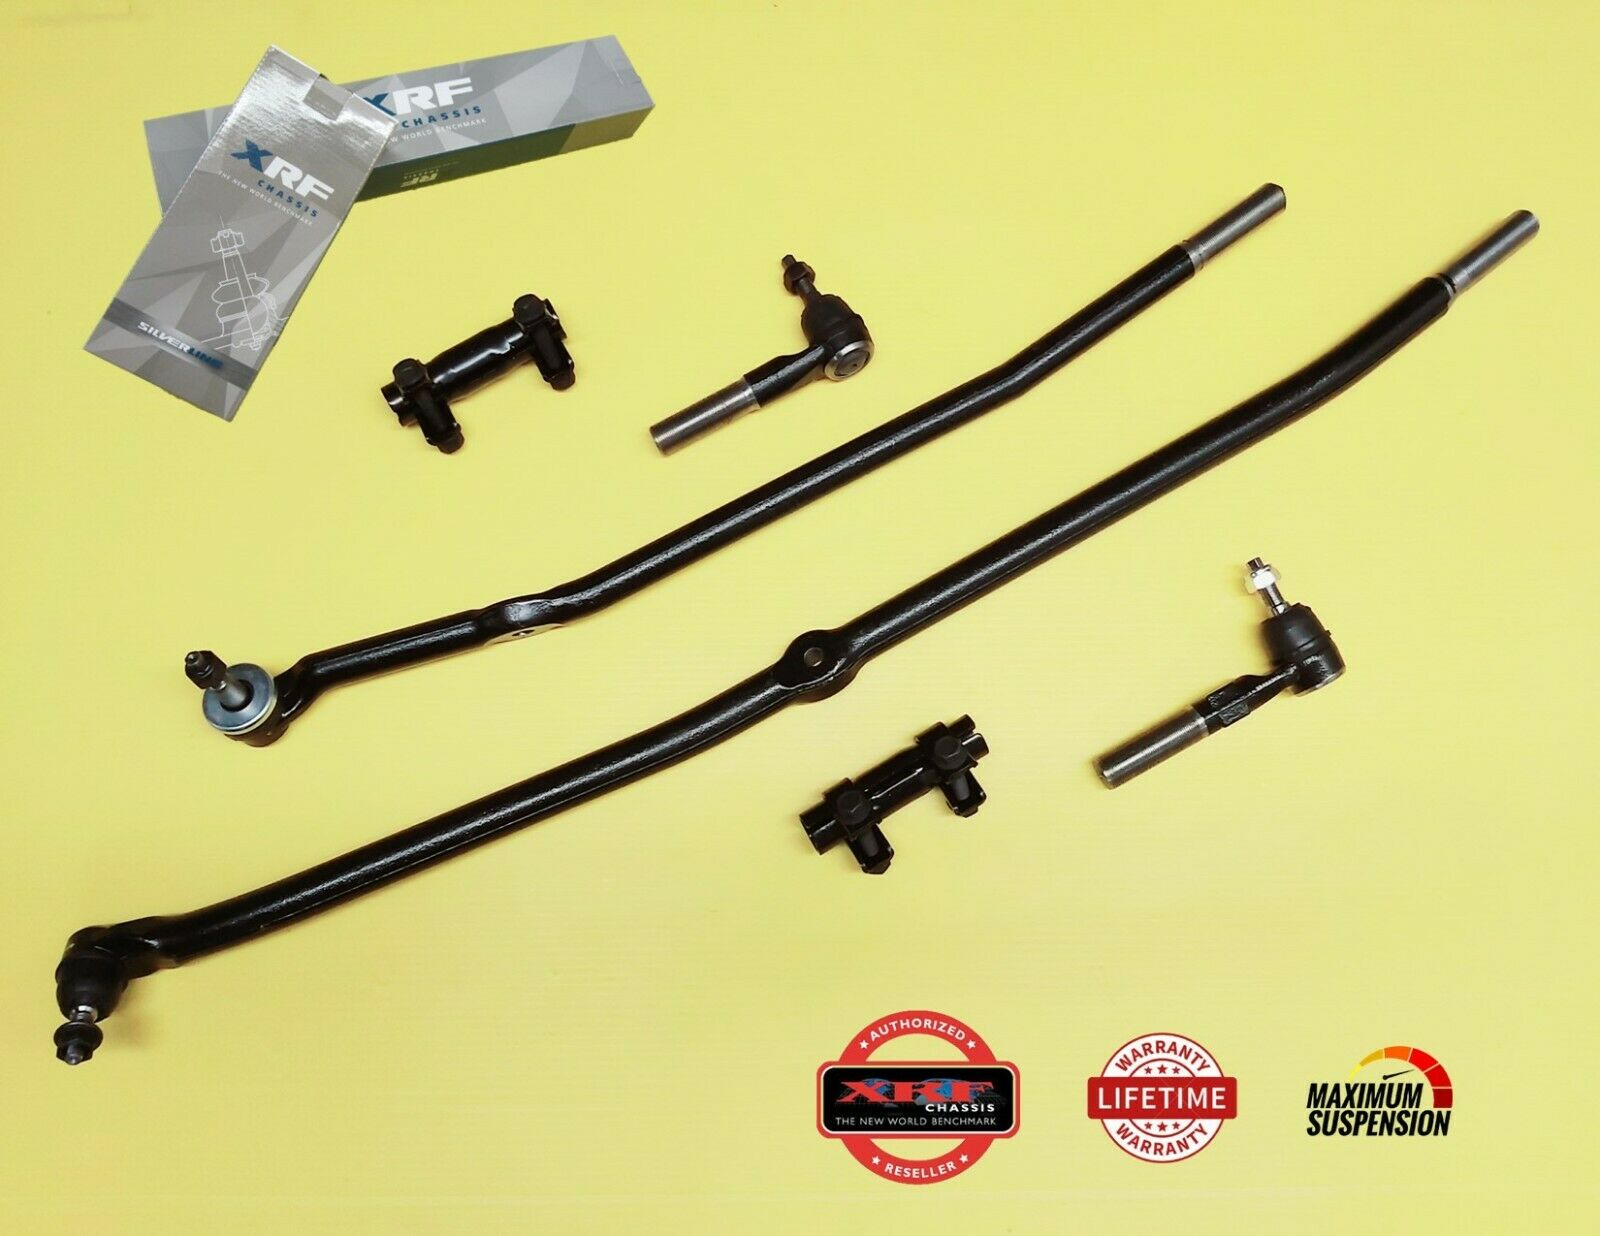 Xrf Inner Outer Tie Rod Drag Link Steering Kit Dodge Ram 2500 3500 Hd 03 1 Of 5only 2 Available See More